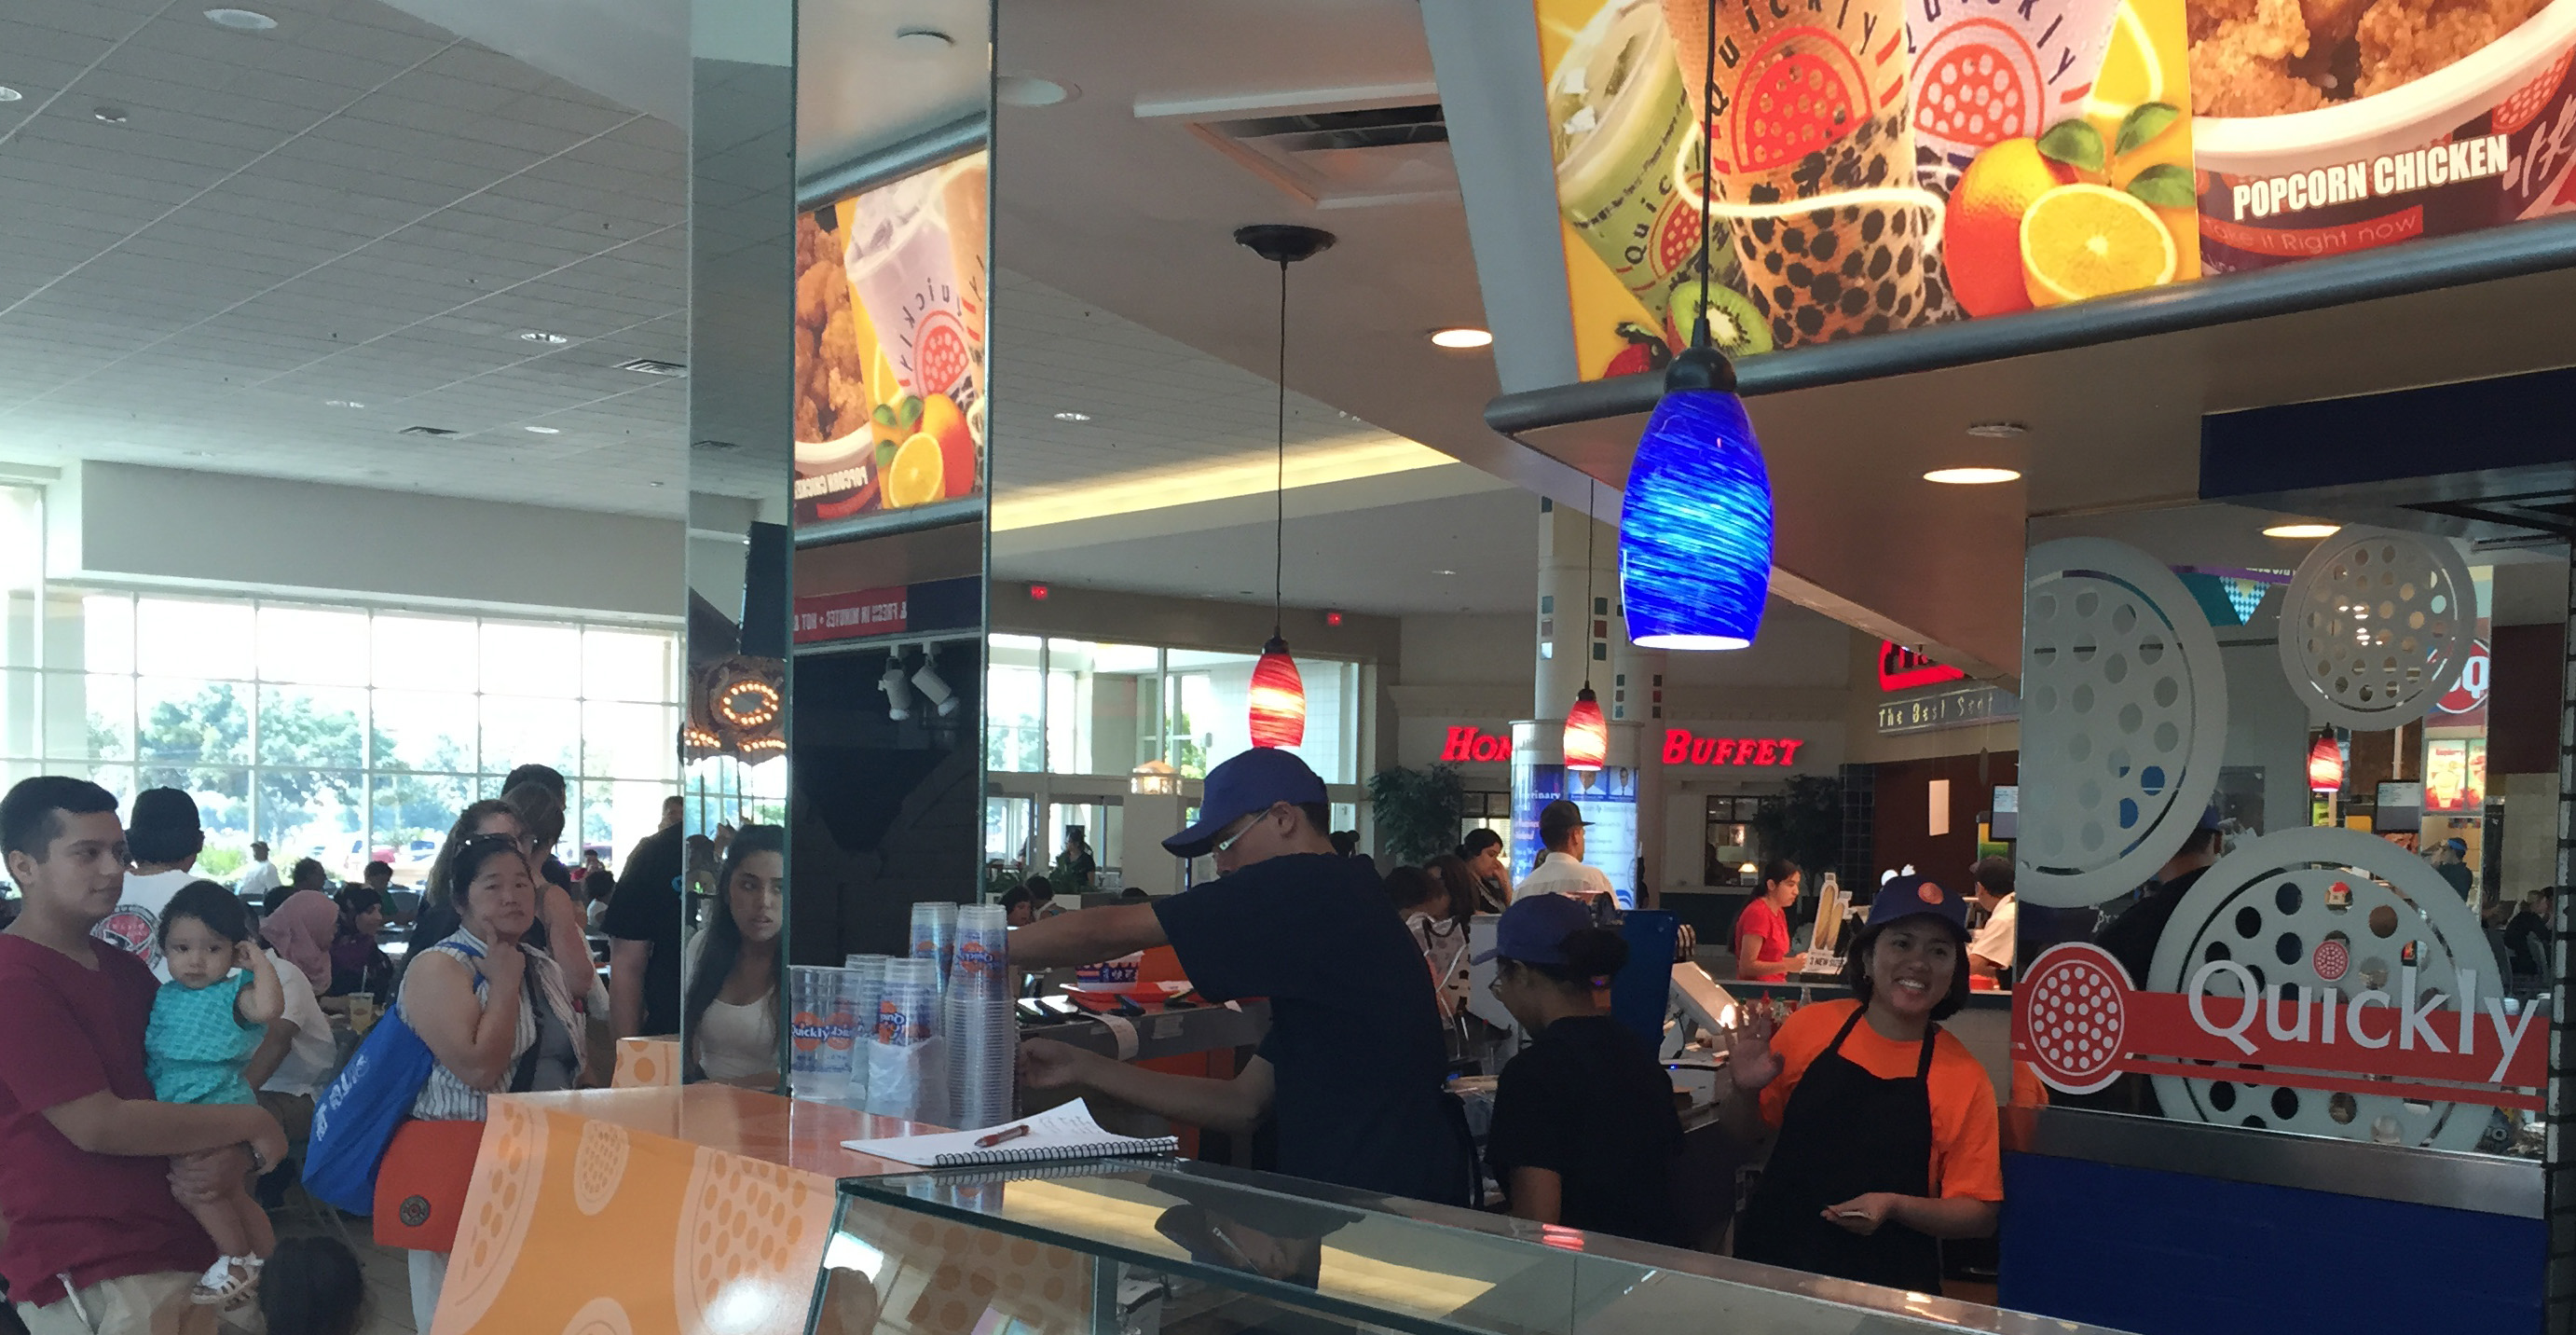 After Shopping, Grab A Bite To Eat At One Of West Valley Mall¡¦s  Restaurants Or Eateries Including Quickly, Buffalo Wild Wings, Olive Garden,  Famous Daveu0027s ...